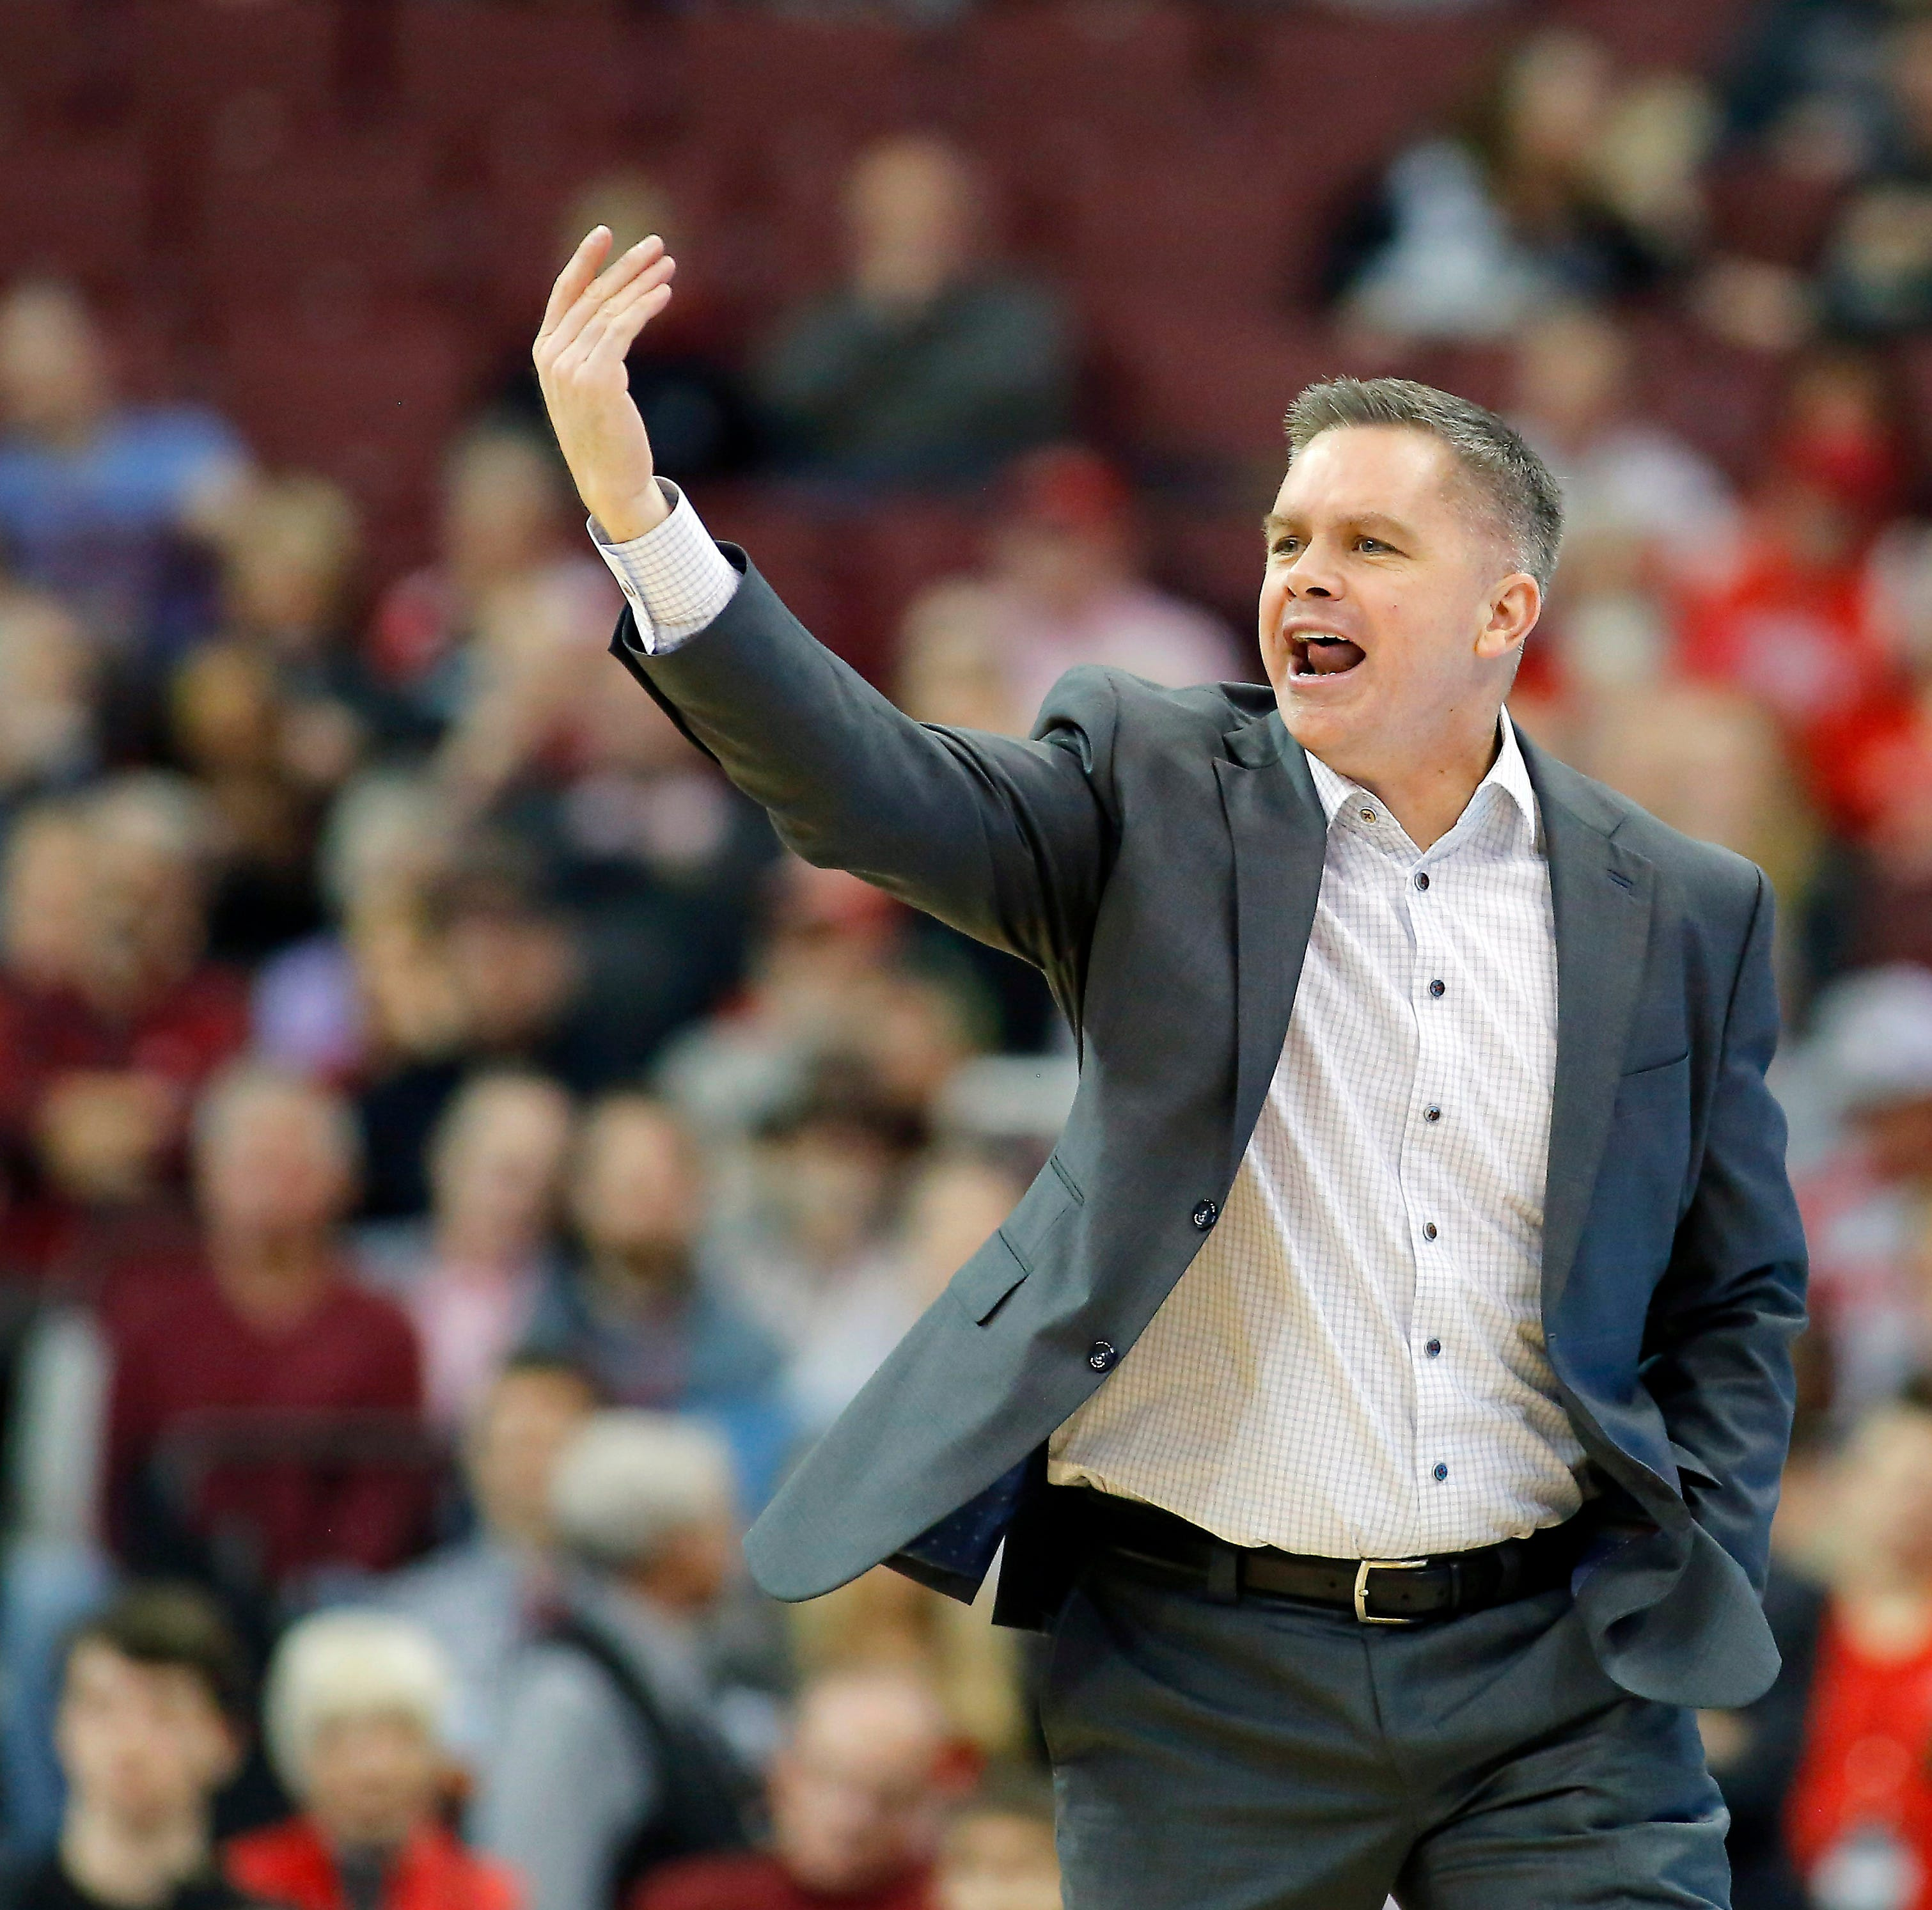 McCurdy: Ohio State's Chris Holtmann proves basketball Buckeyes relevant again